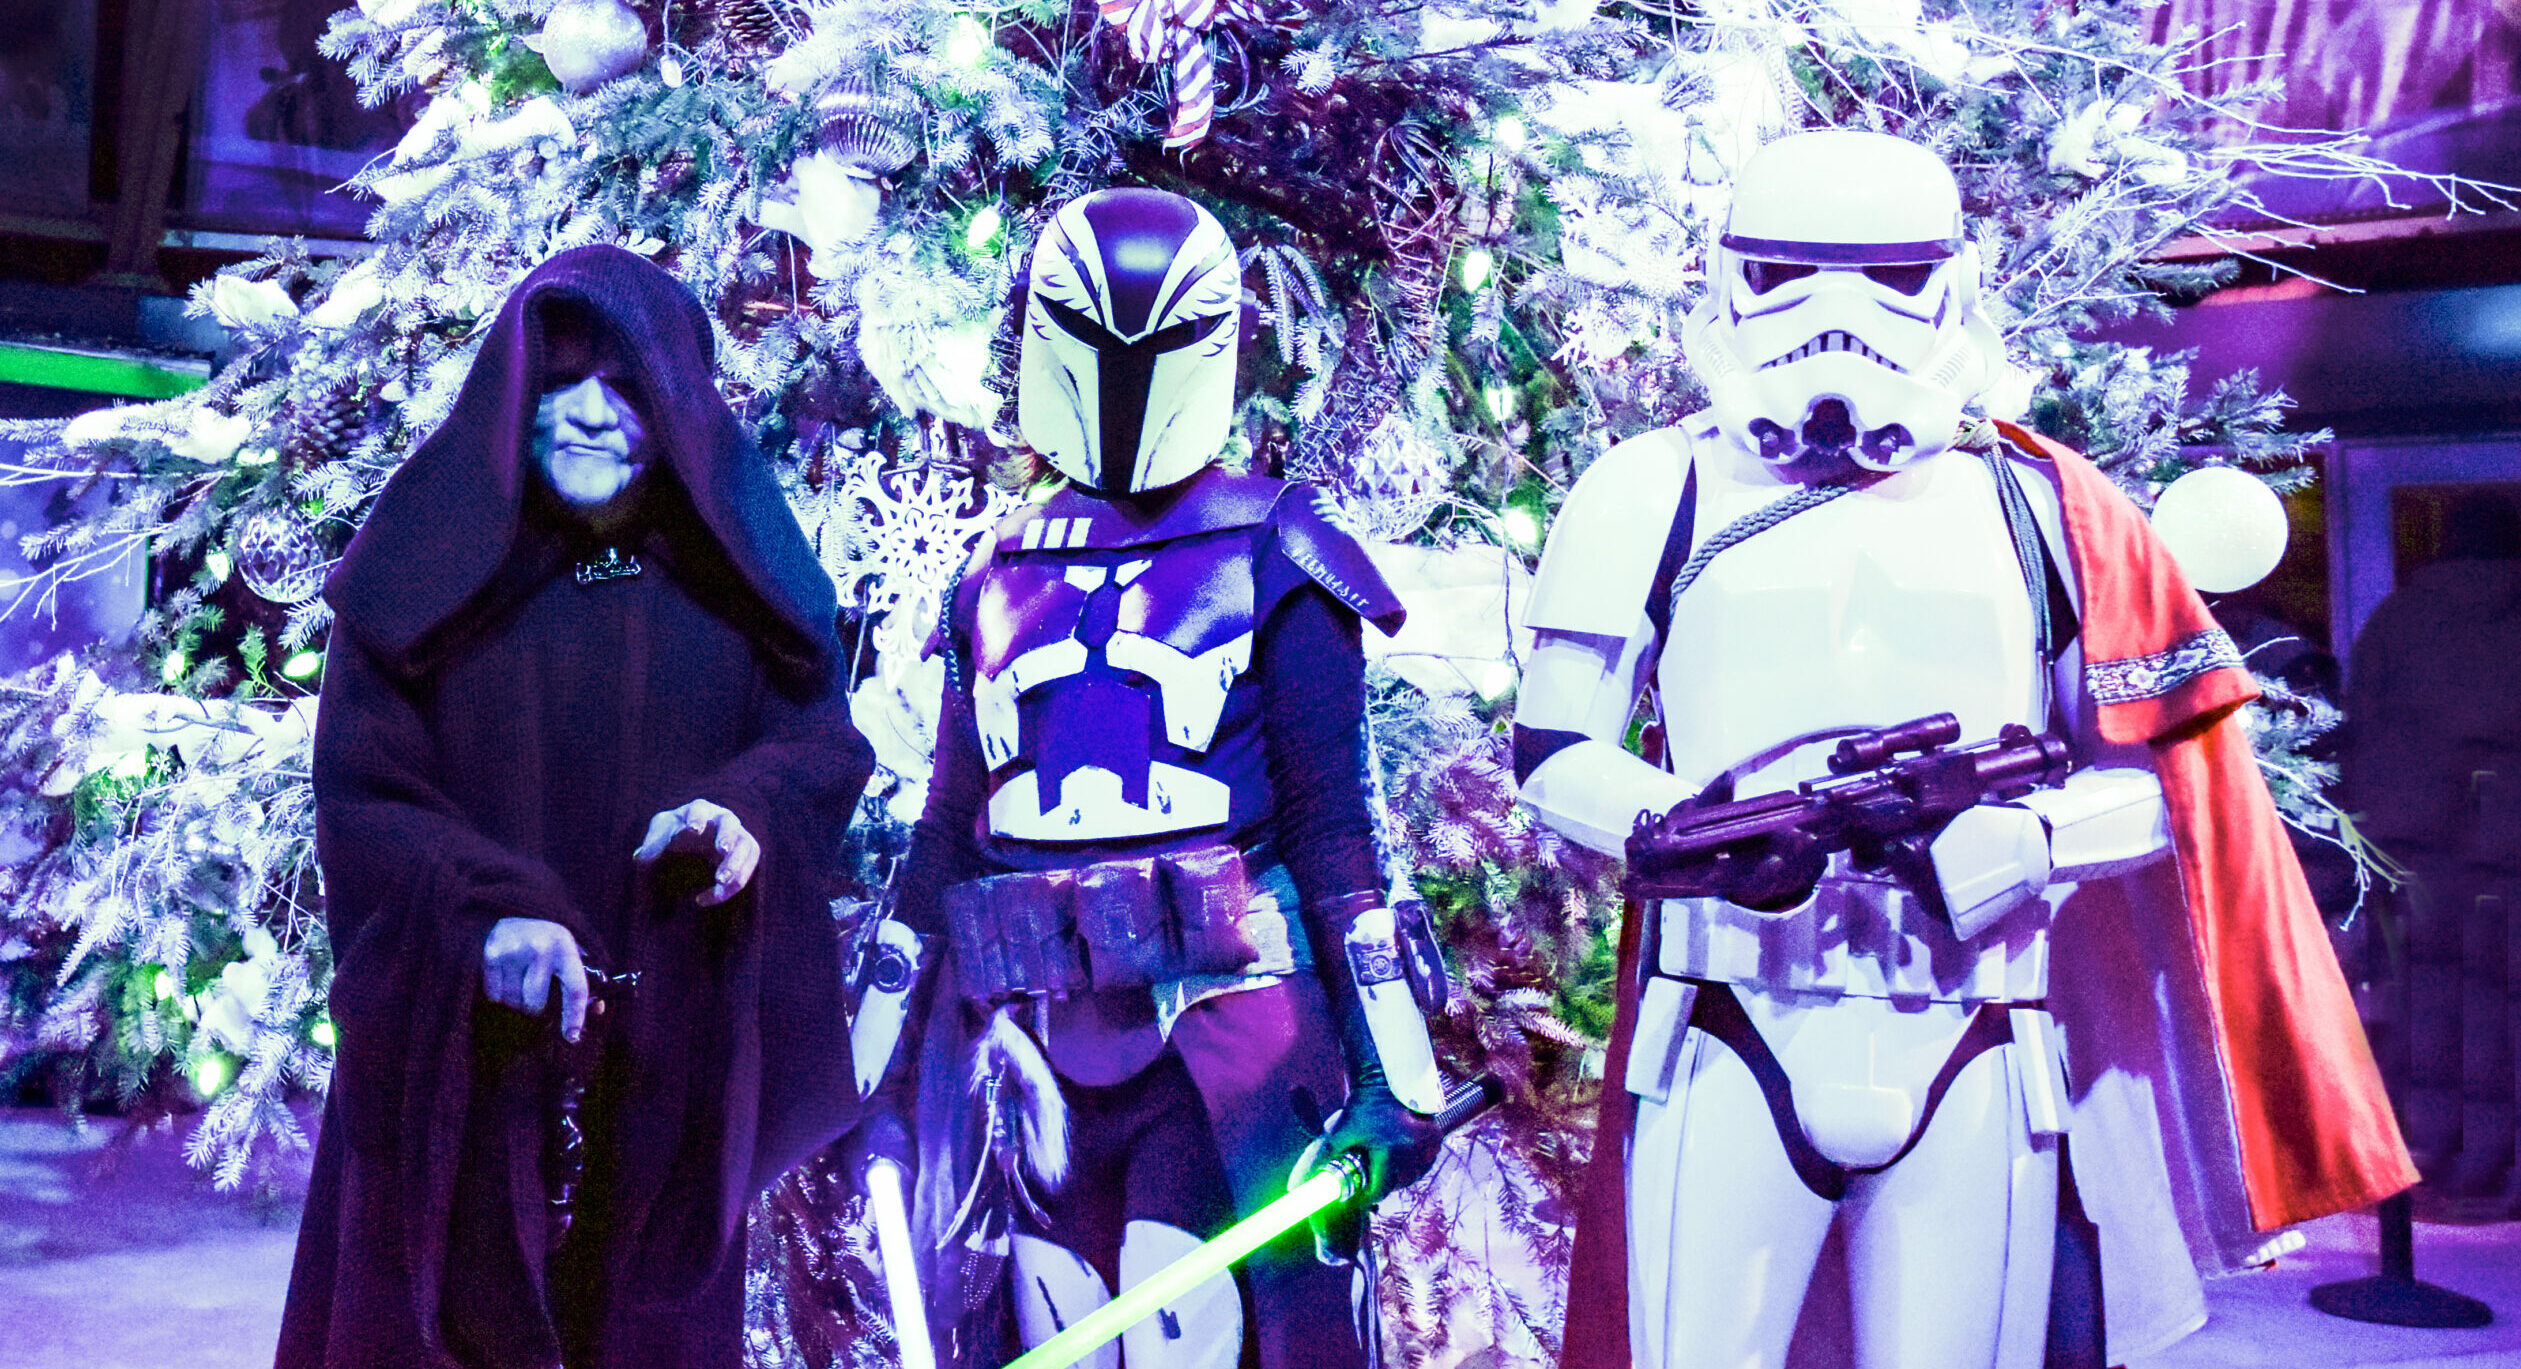 501st Star Wars characters